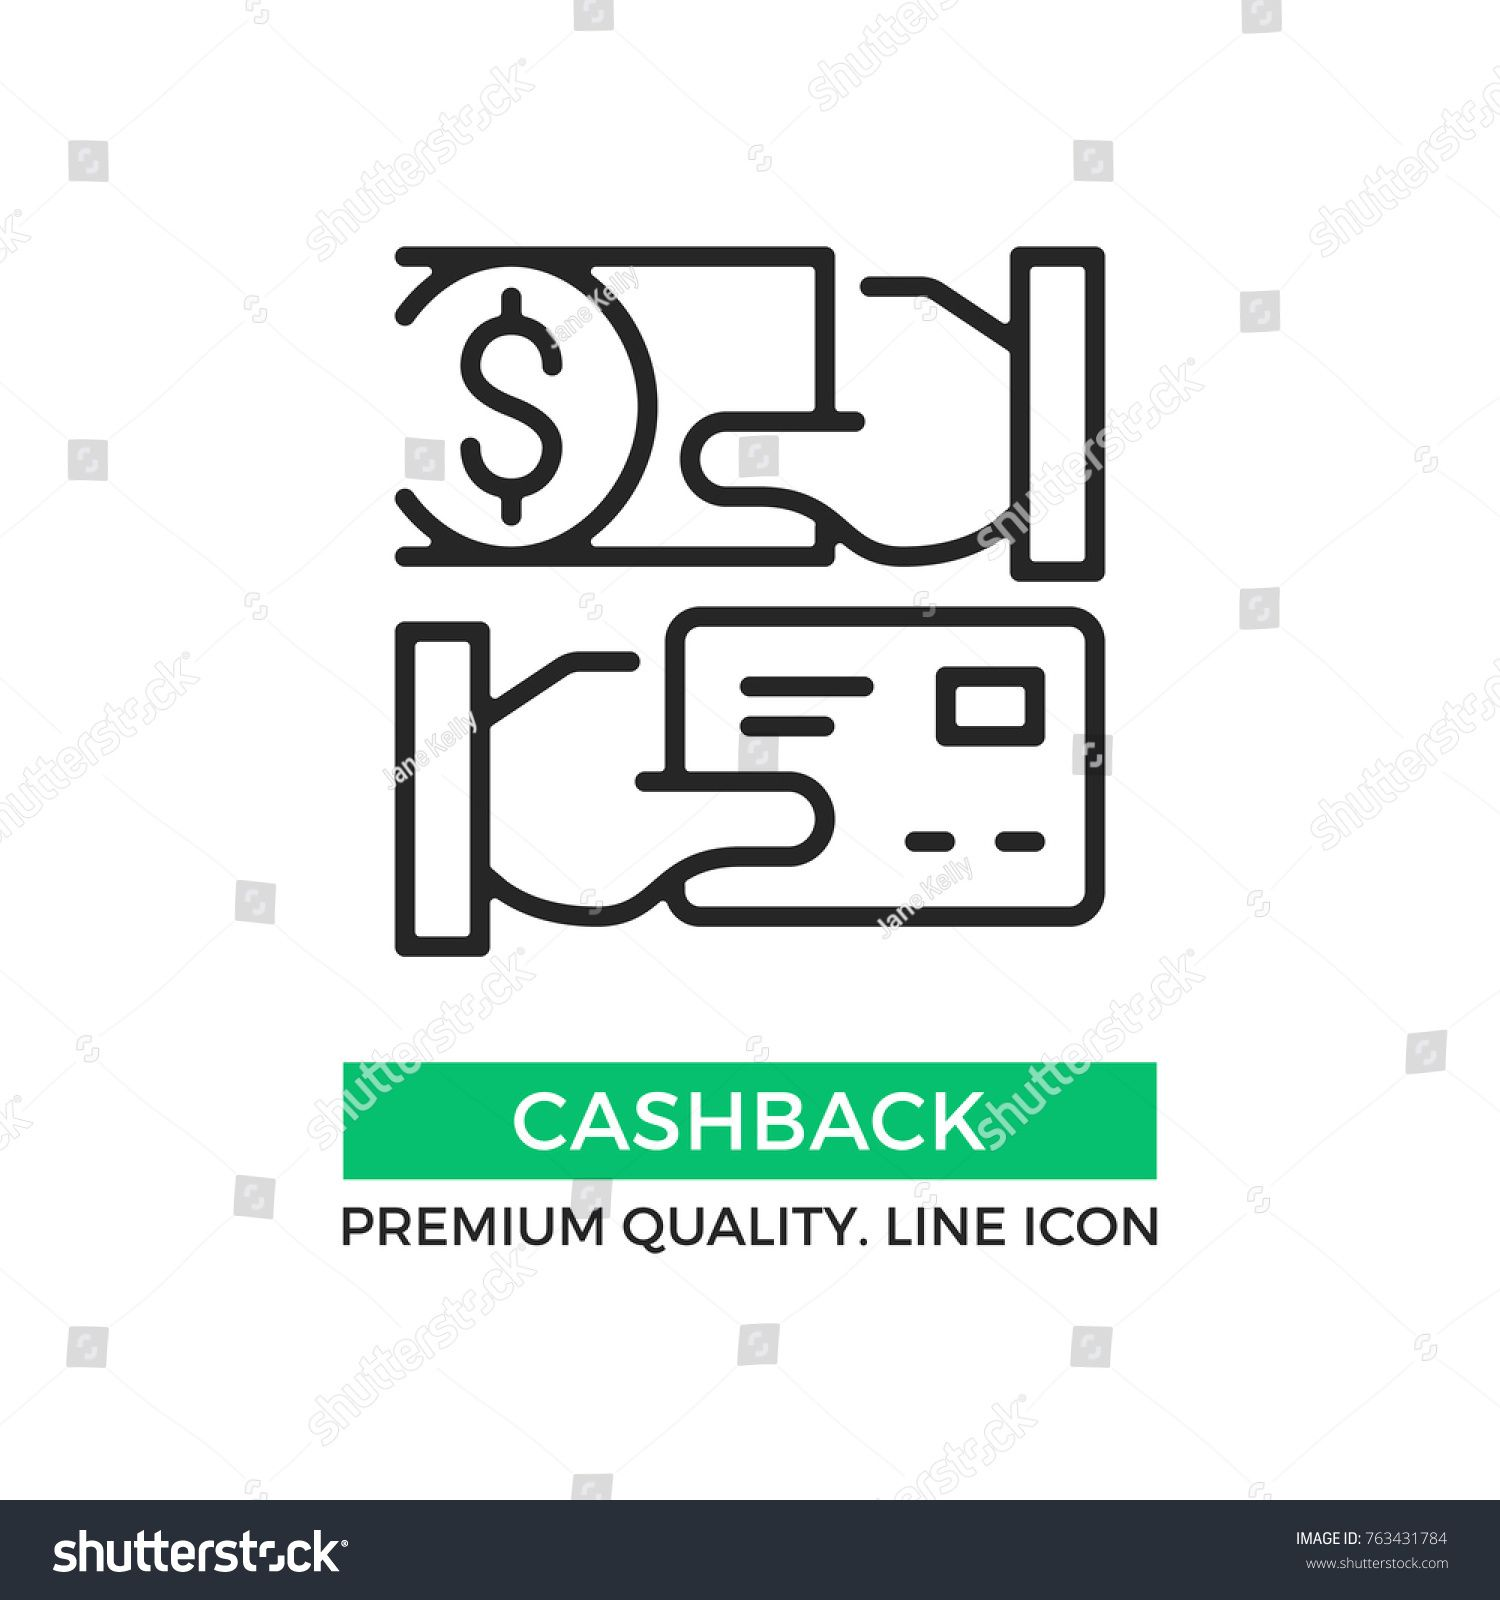 vector cashback icon cash back hand holding credit card and hand holding dollar bill premium quality graphic design element mo in 2020 line icon pictogram cashback pinterest